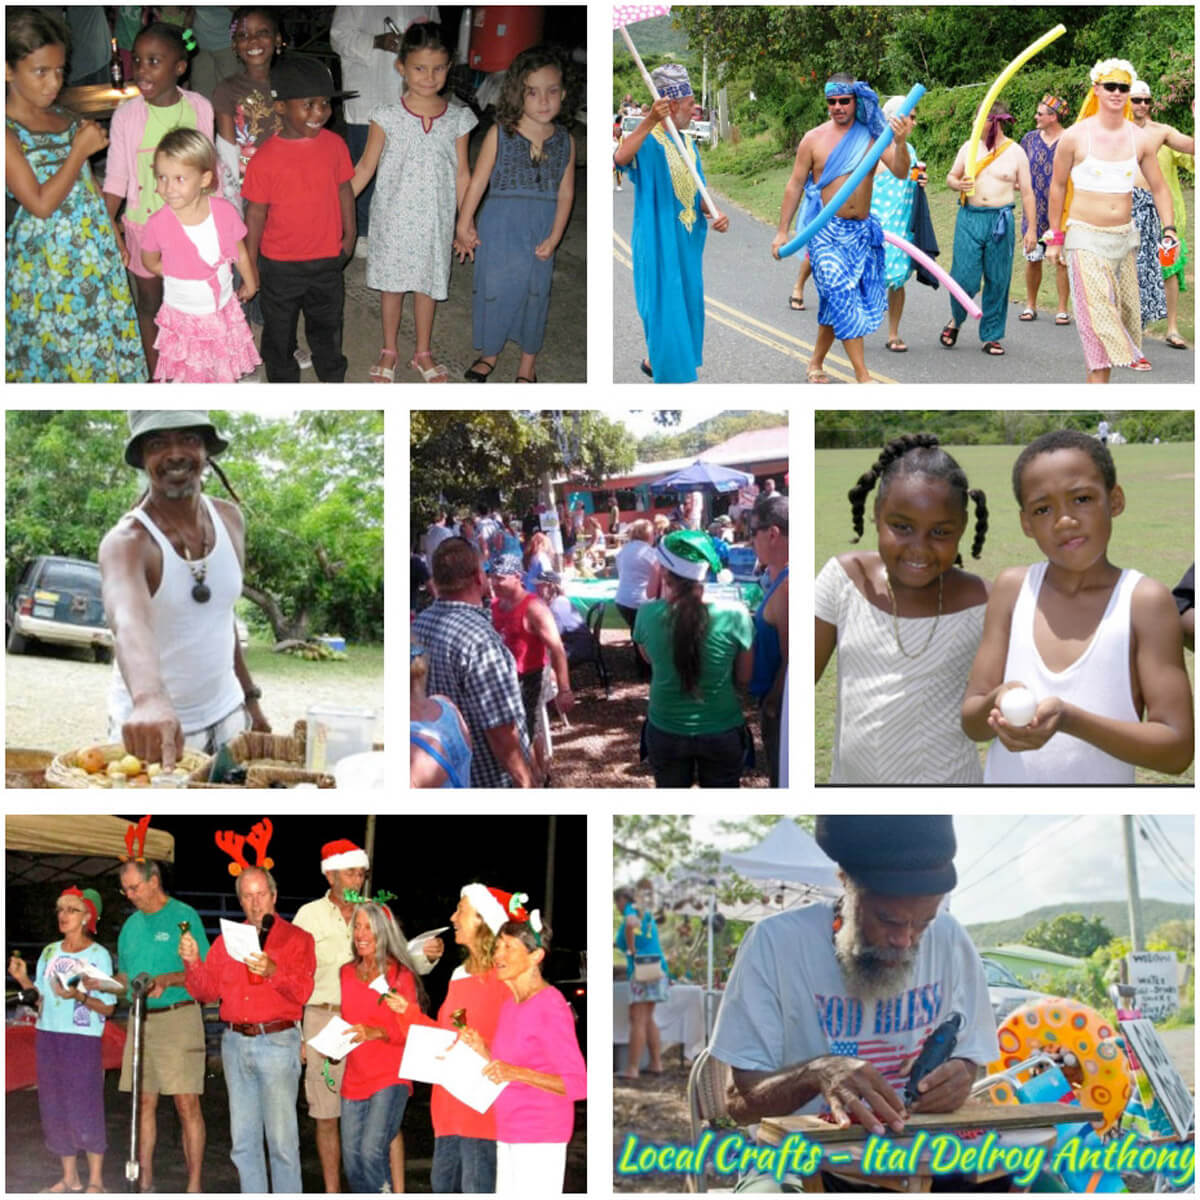 Coral Bay Culture and Community